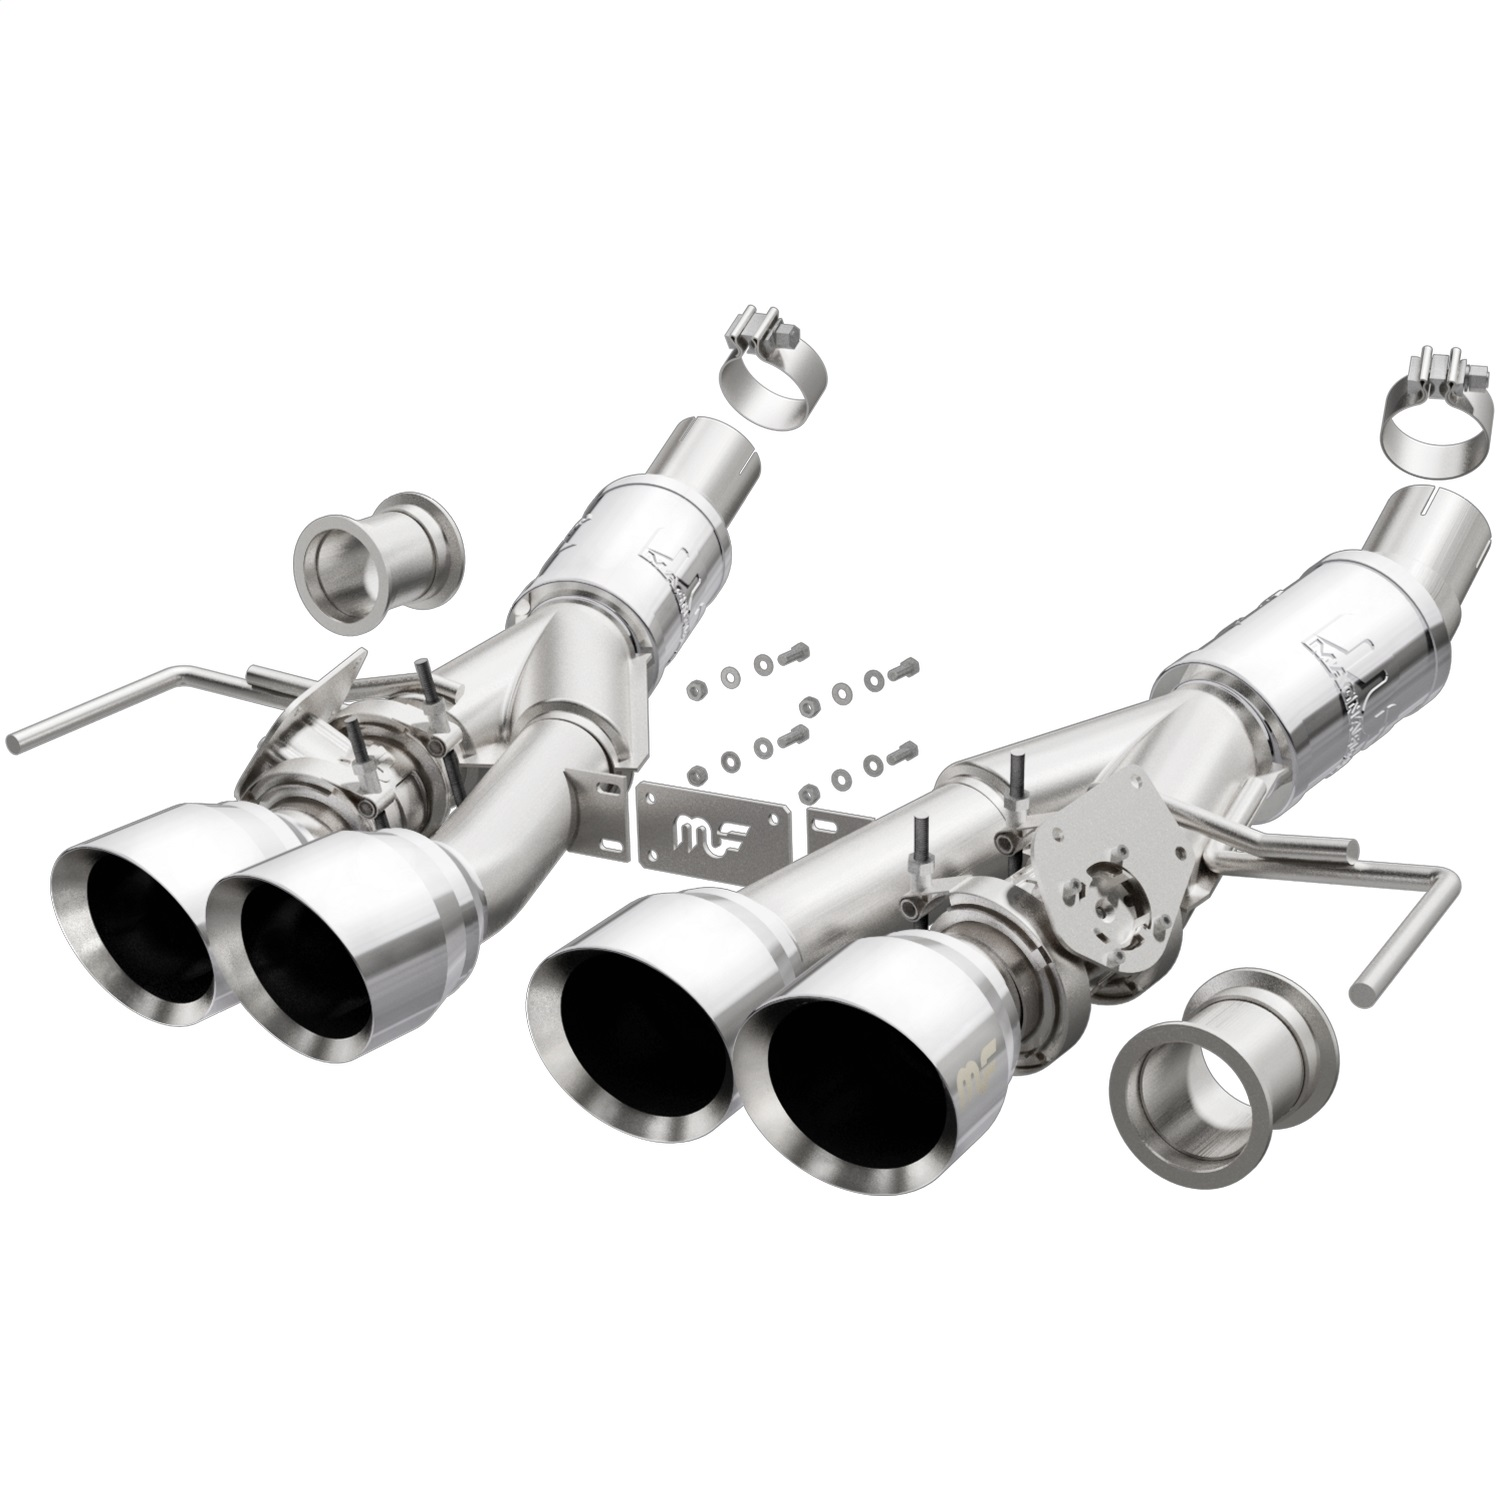 Details about Magnaflow Performance Exhaust 19379 Exhaust System Kit